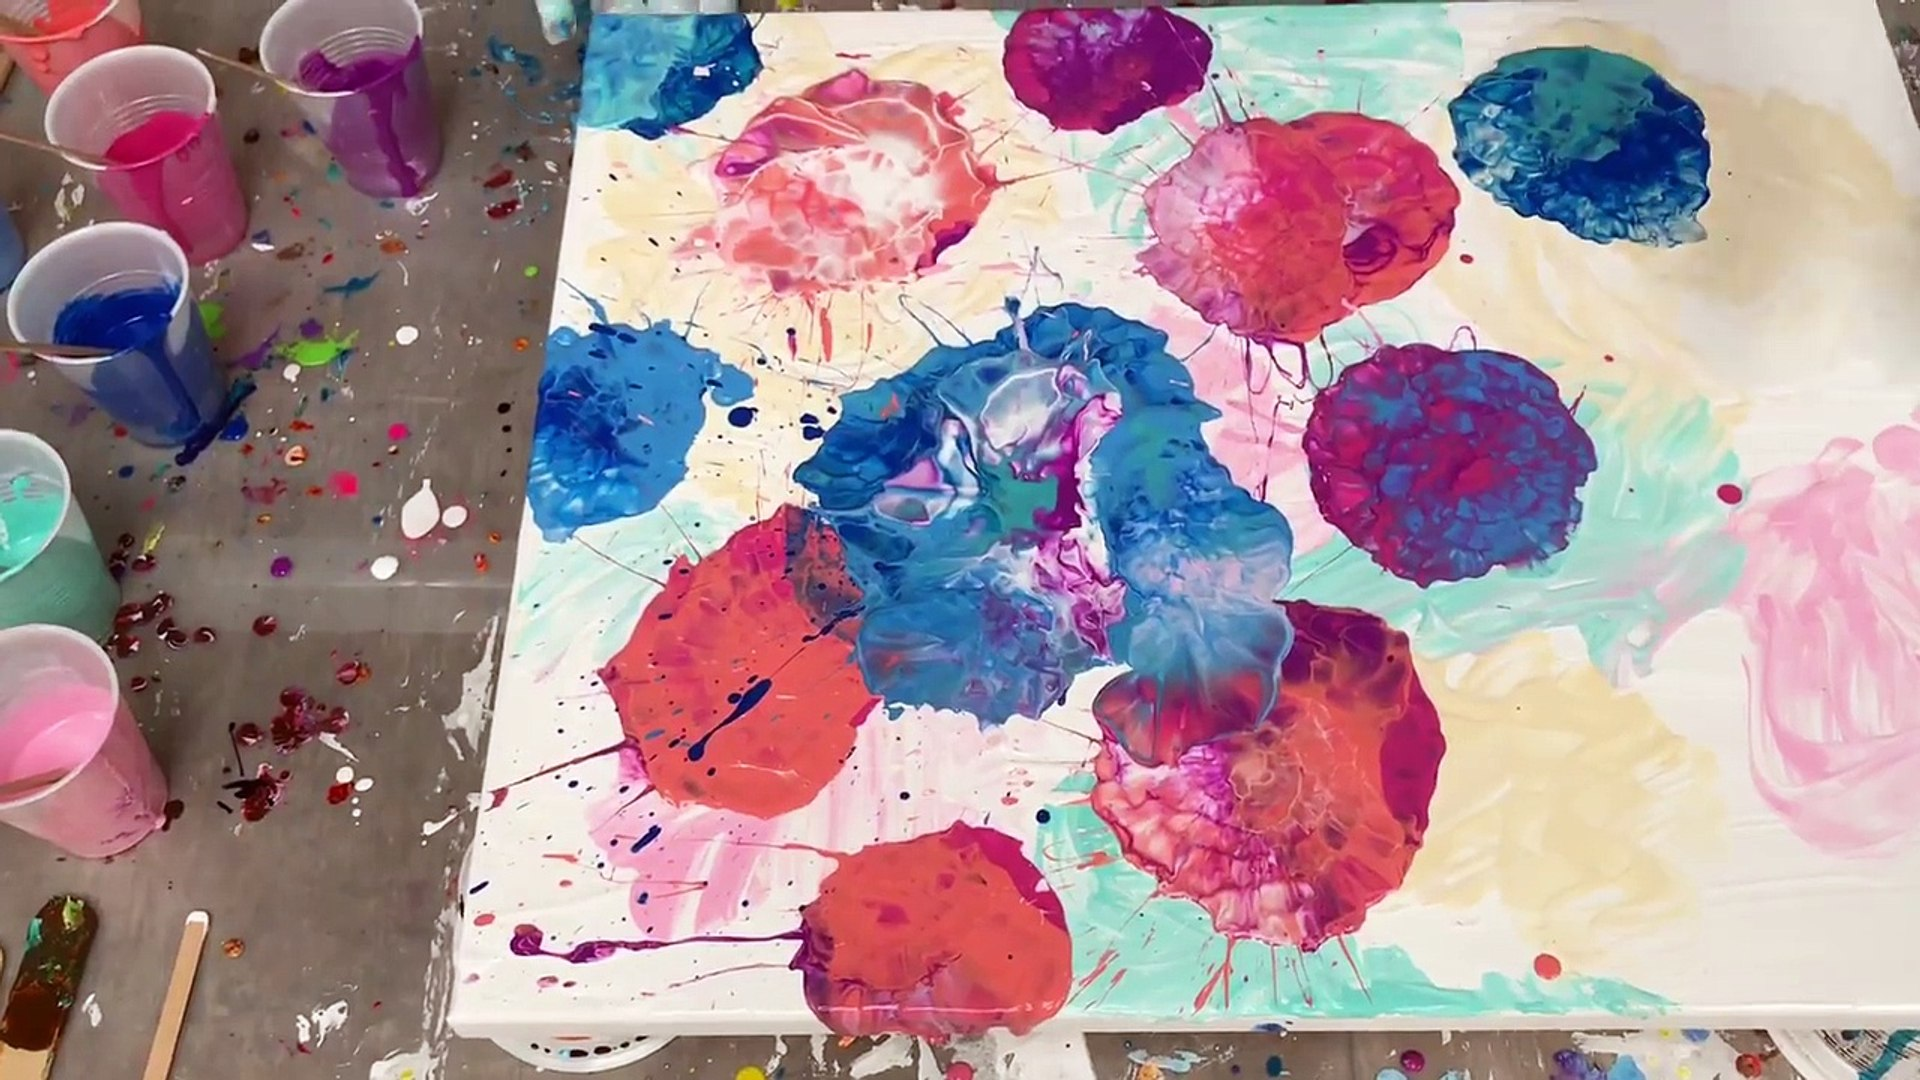 Acrylic Pour Painting Create Flowers With Blown Puddles Using Americana Paint Video Dailymotion